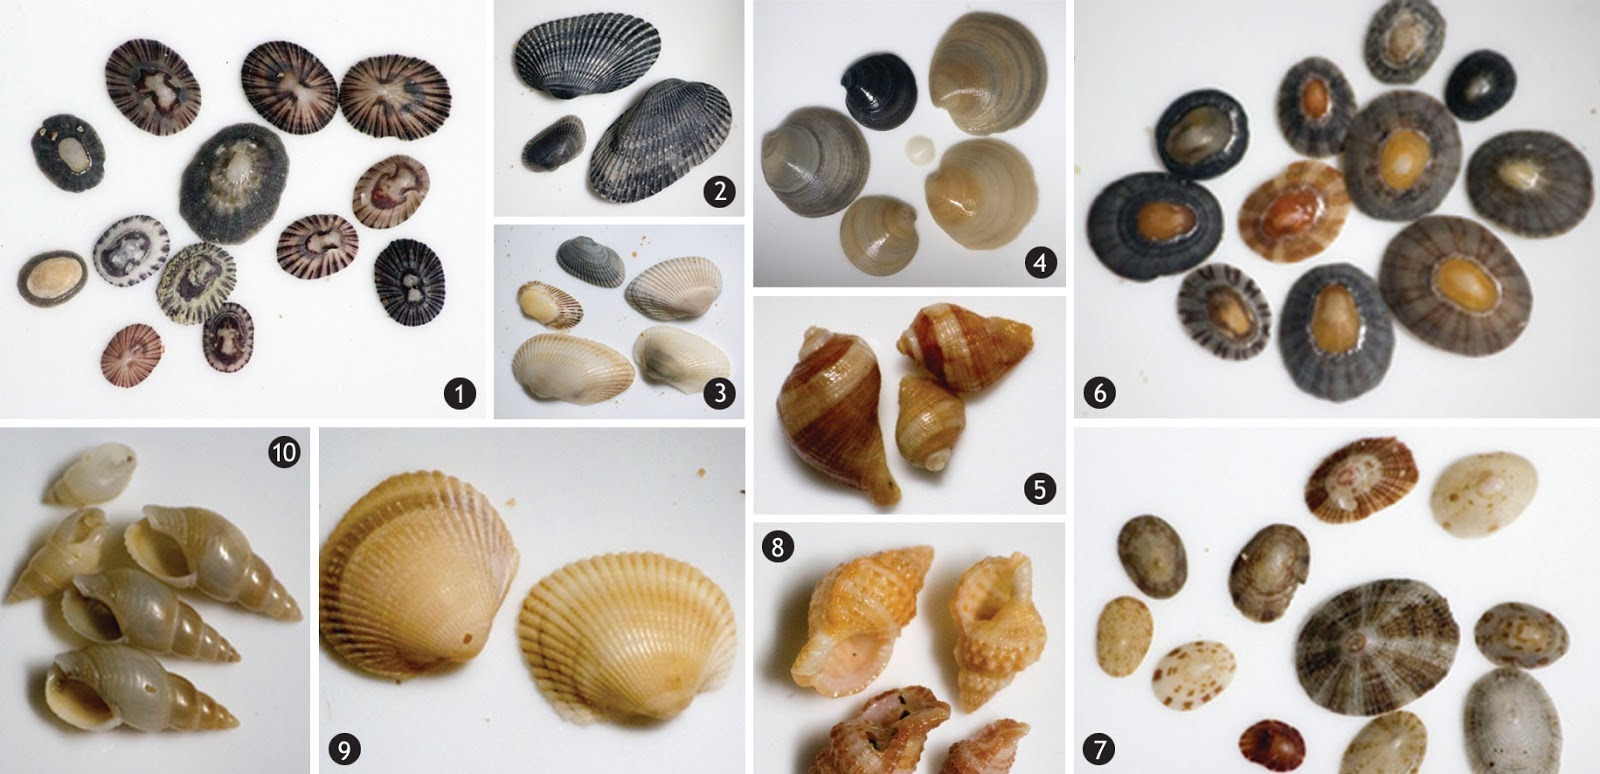 Some of the shell-fish species documented in the Vizhinjam area.